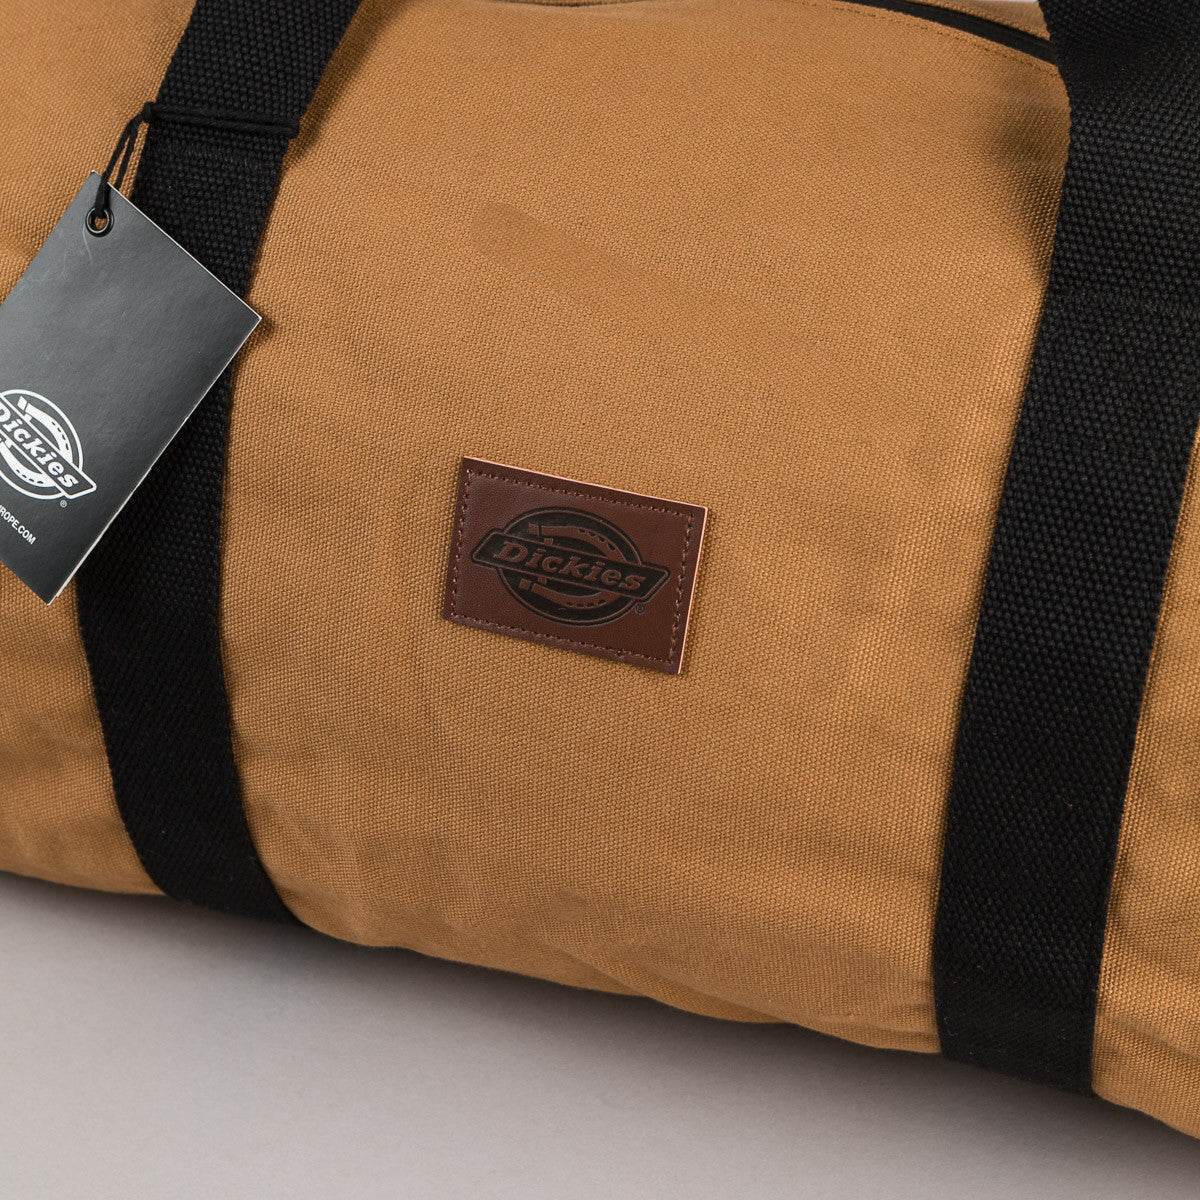 Dickies Newburg Duffel Bag - Brown Duck